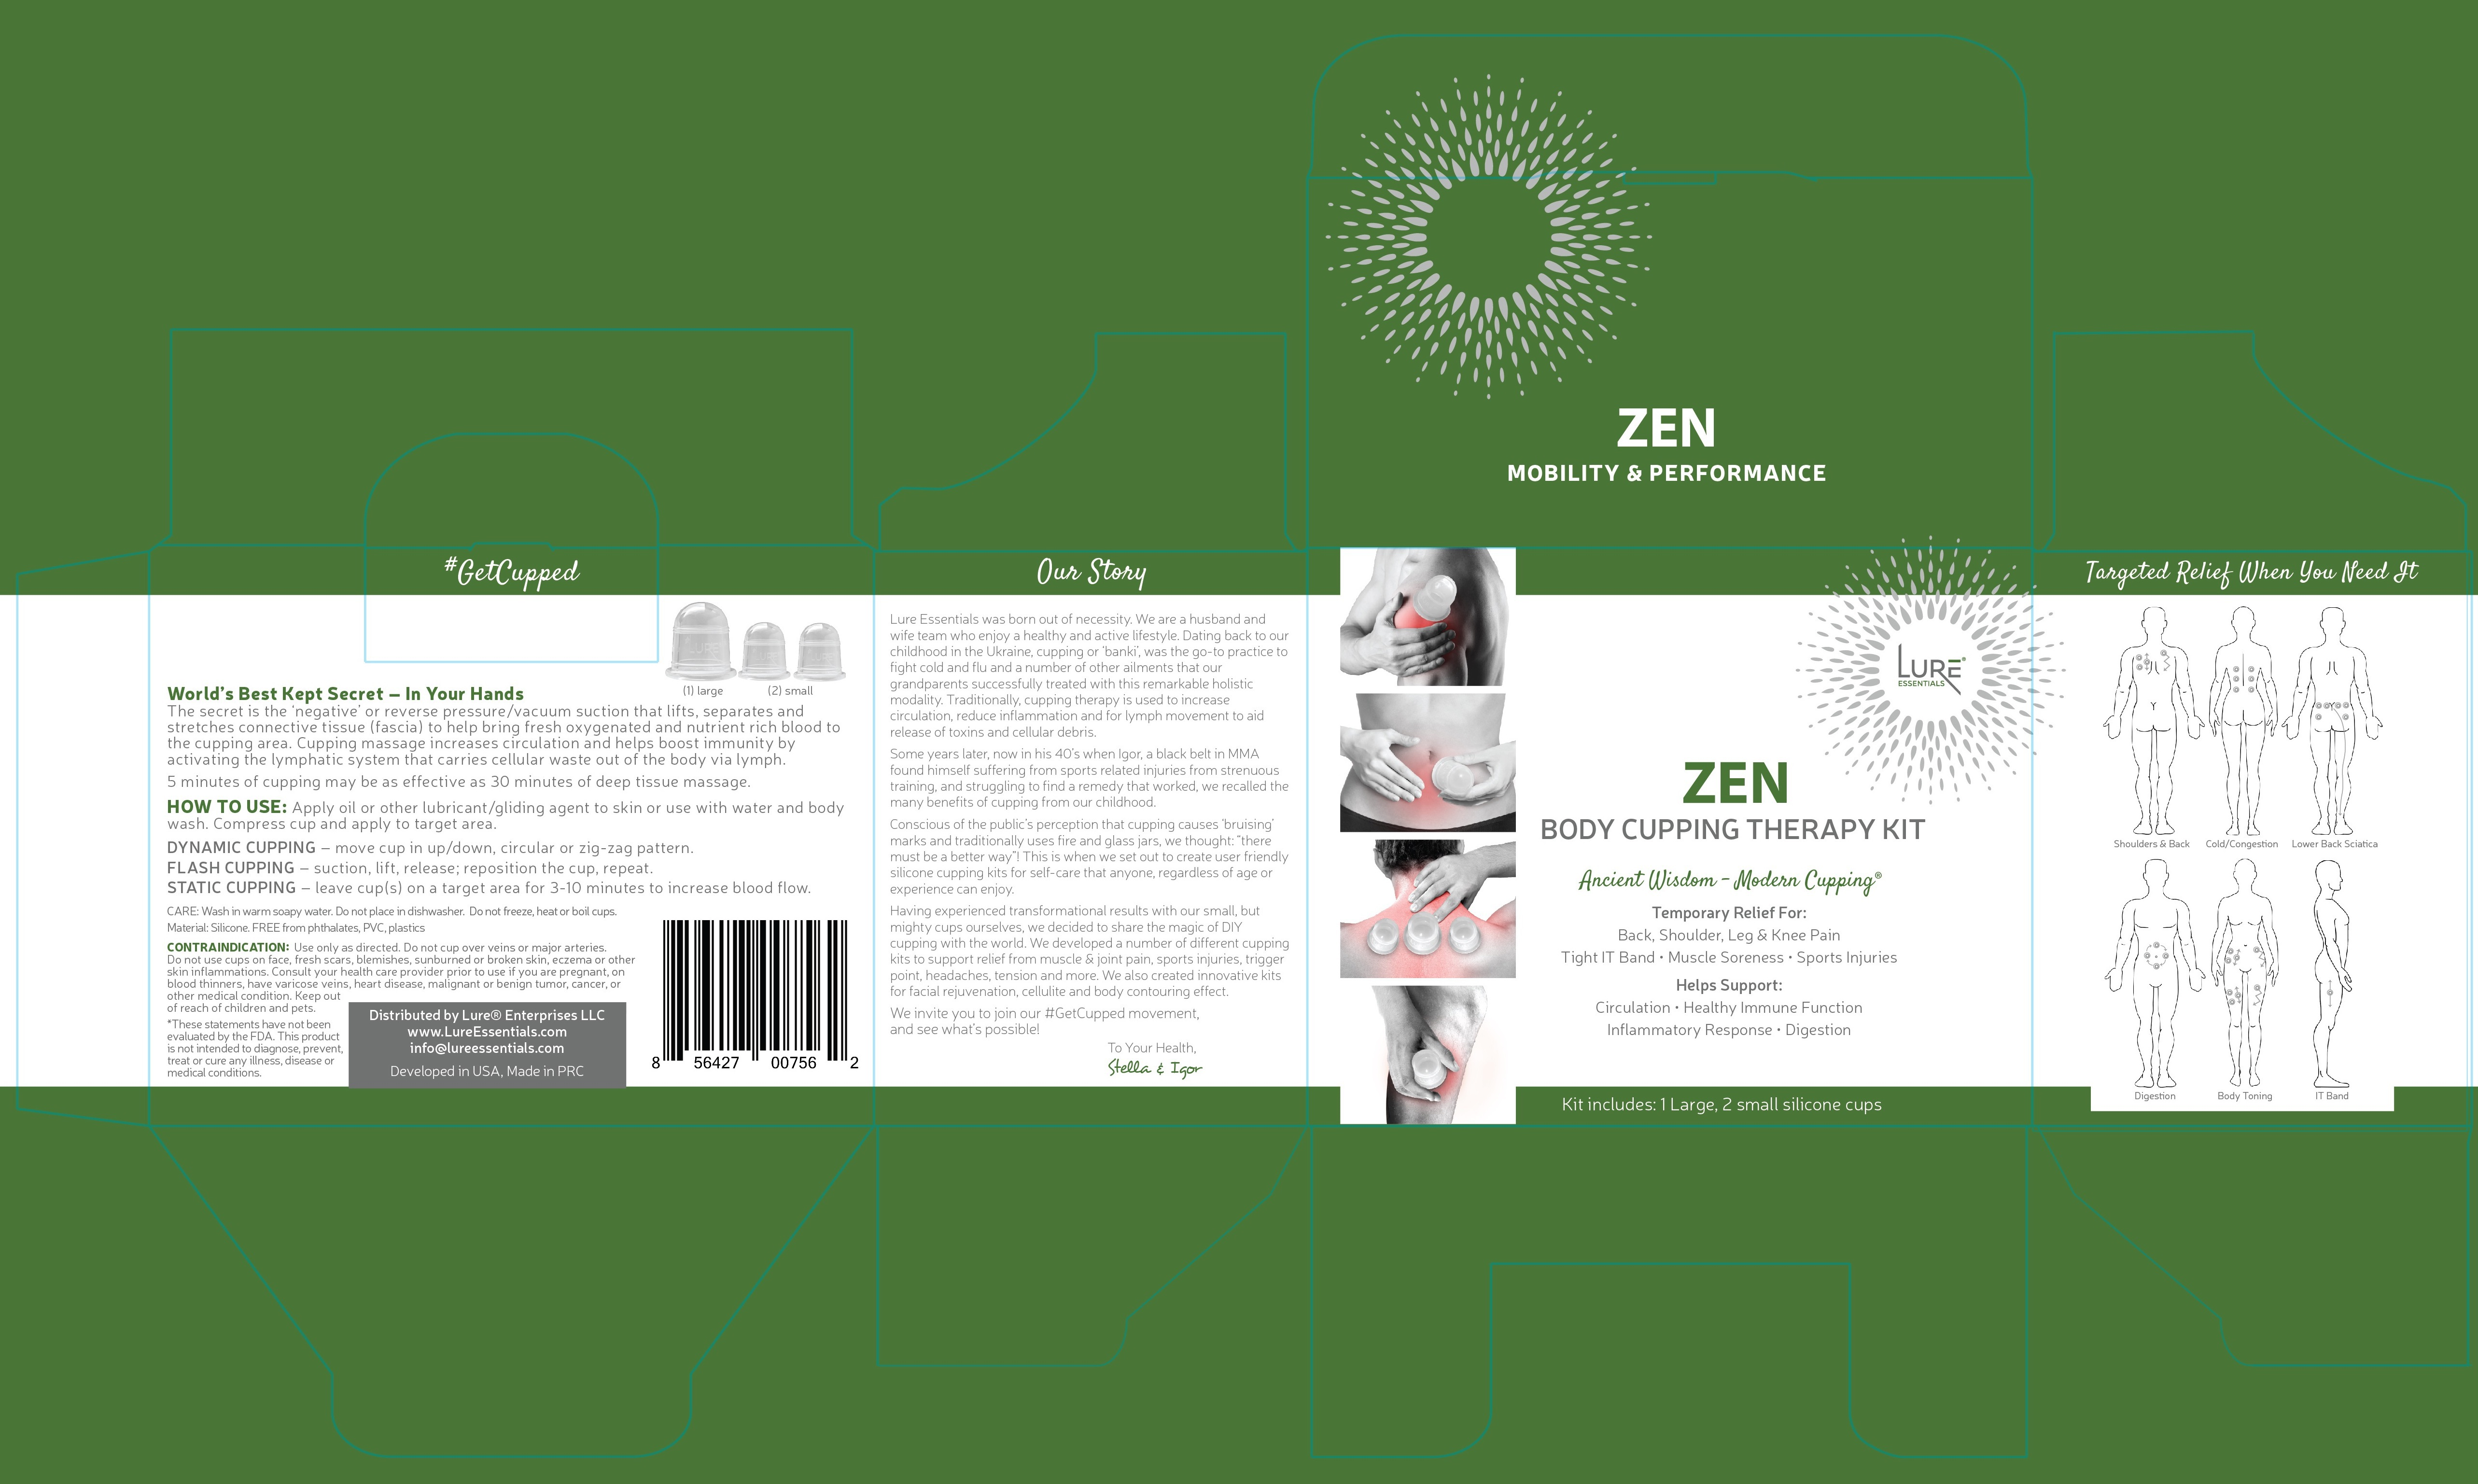 Zen Body Cupping Therapy Kit | The Natural Products Brands